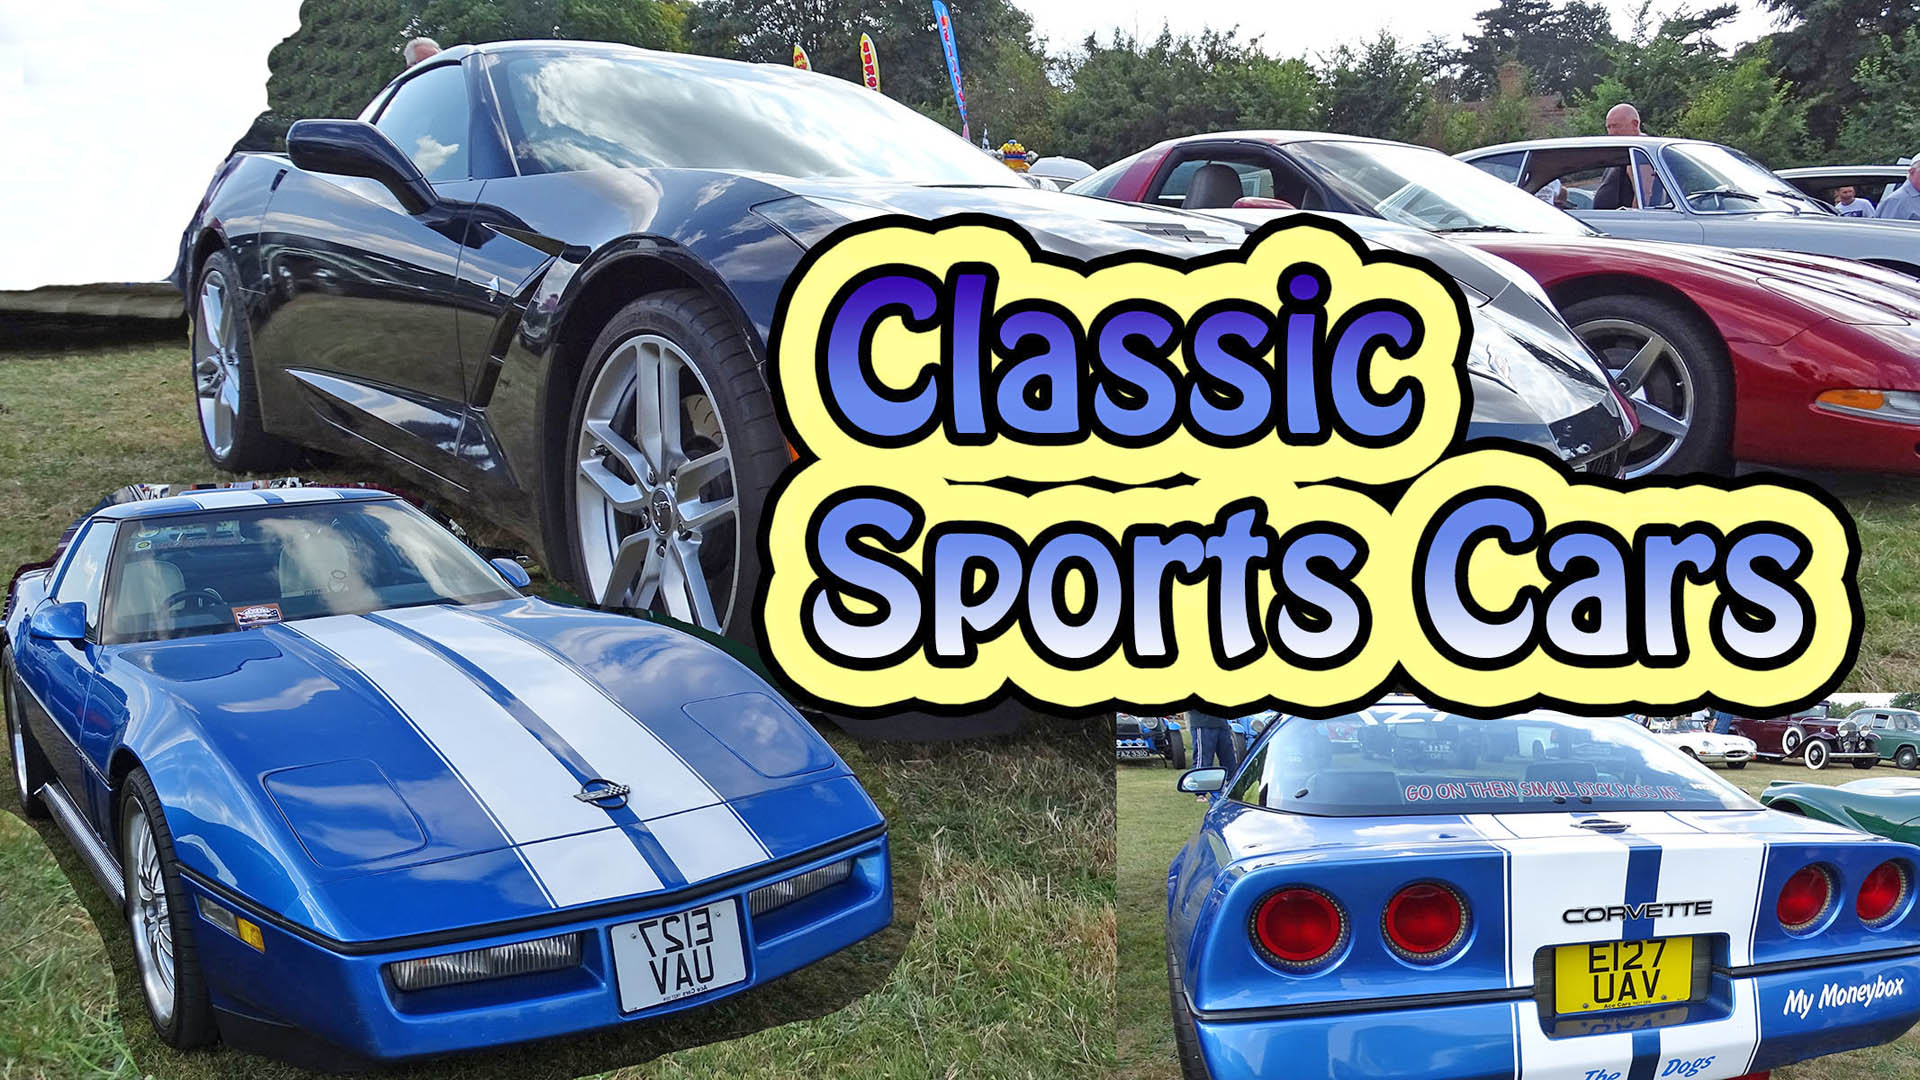 American Corvette's Mustang's Super Classic Sports Cars at Croxley Green Car Show